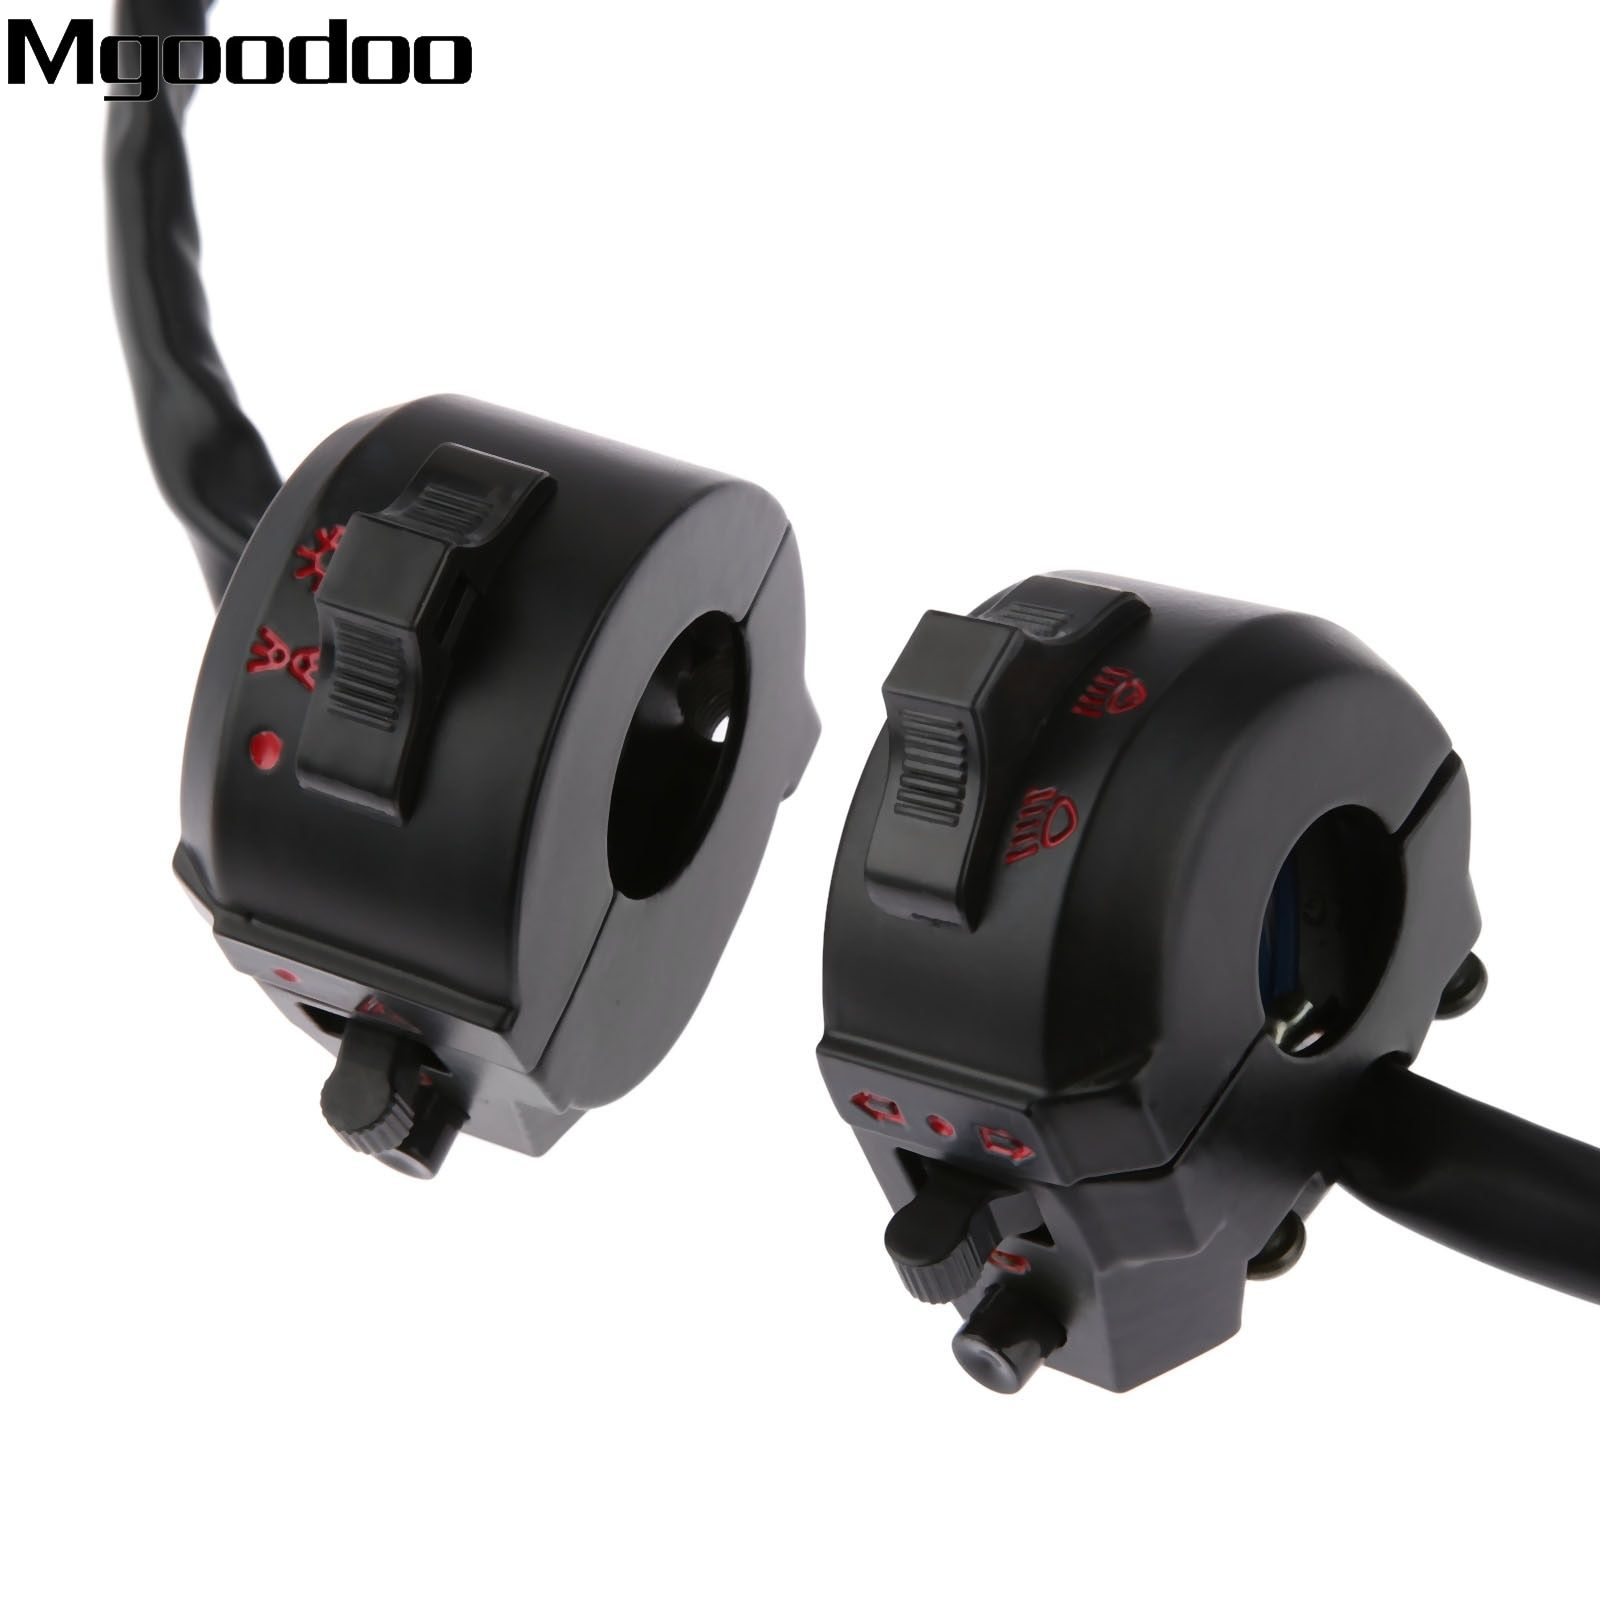 New Motorcycle ATV 22mm Handlebar Left Right Side Control Switch High/Low Beam Light Turn Signal Horn Switch 7/8 Motorbike Part